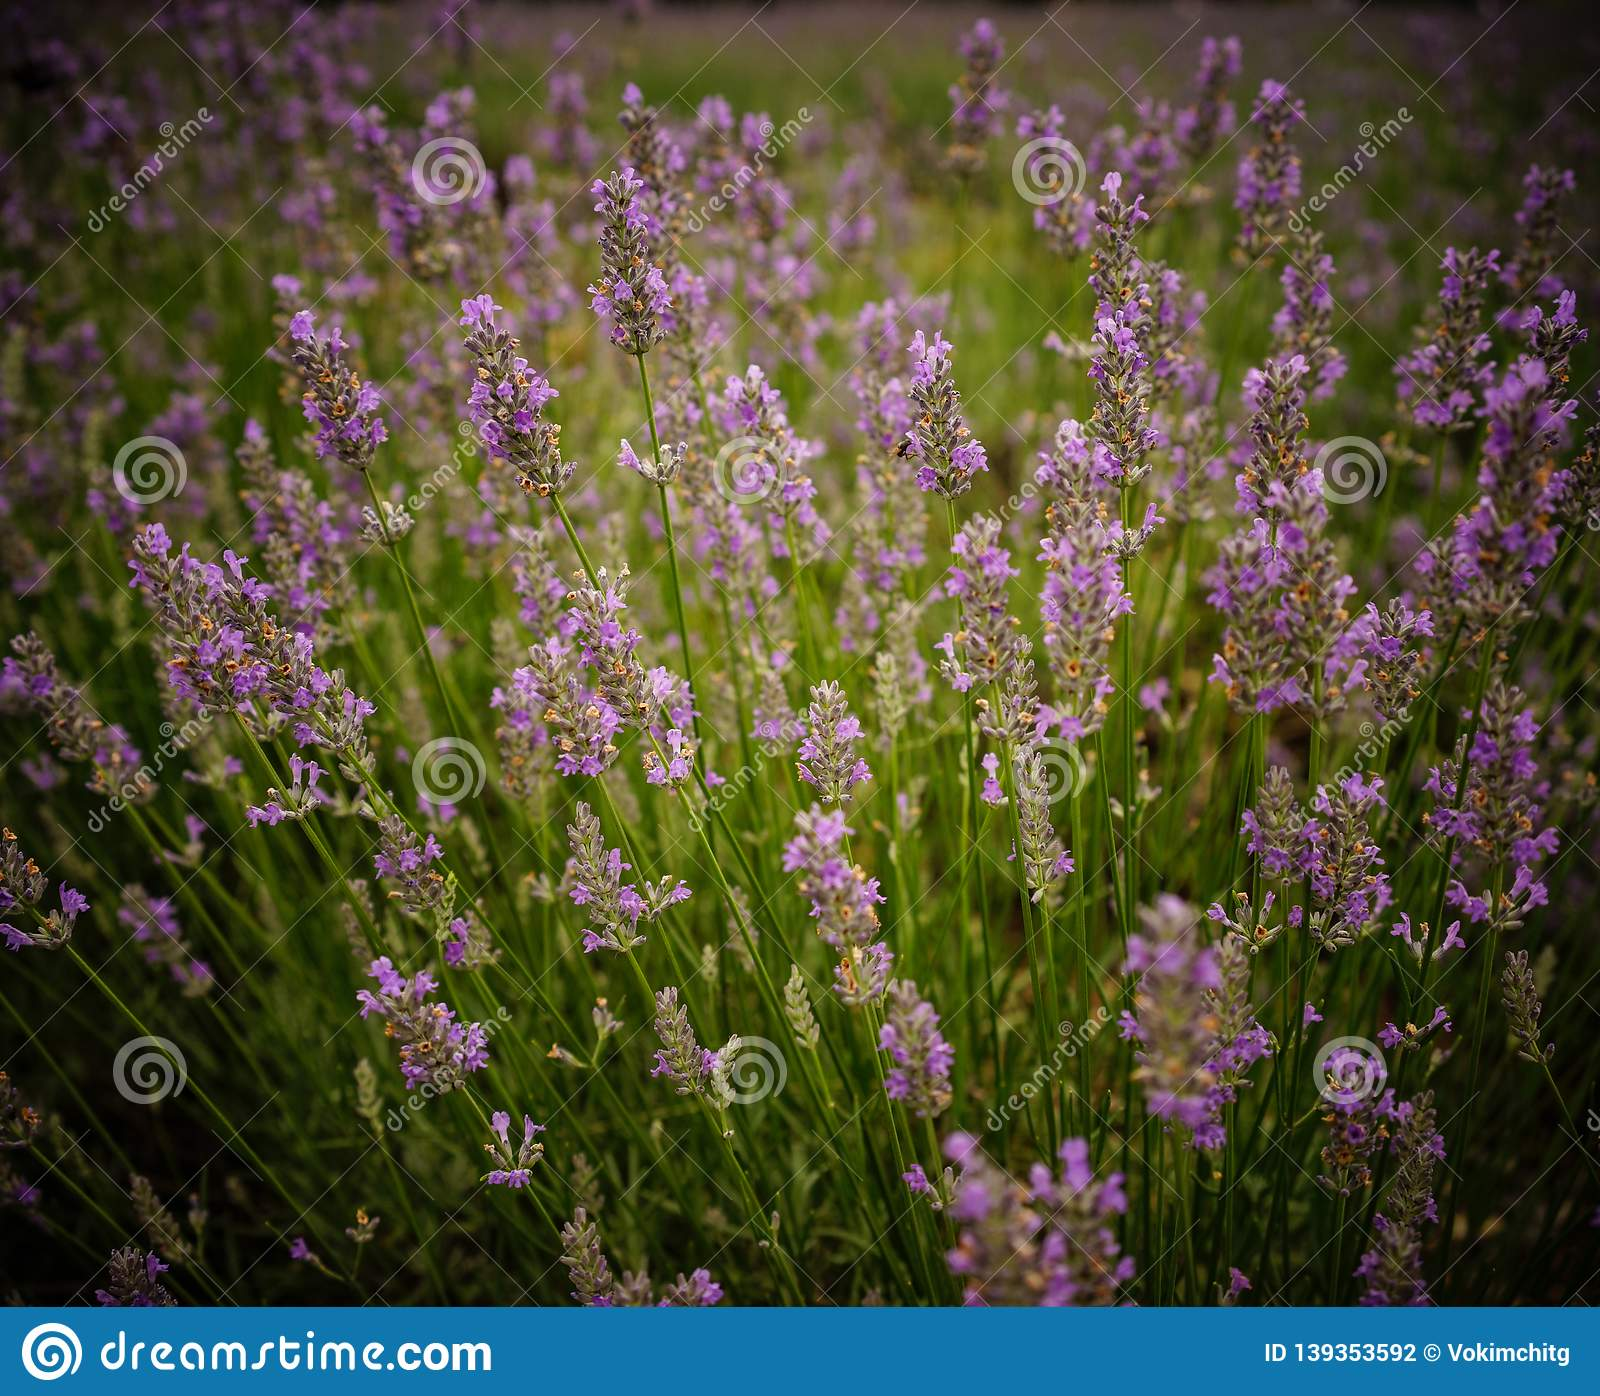 Lavender flower field in summer day